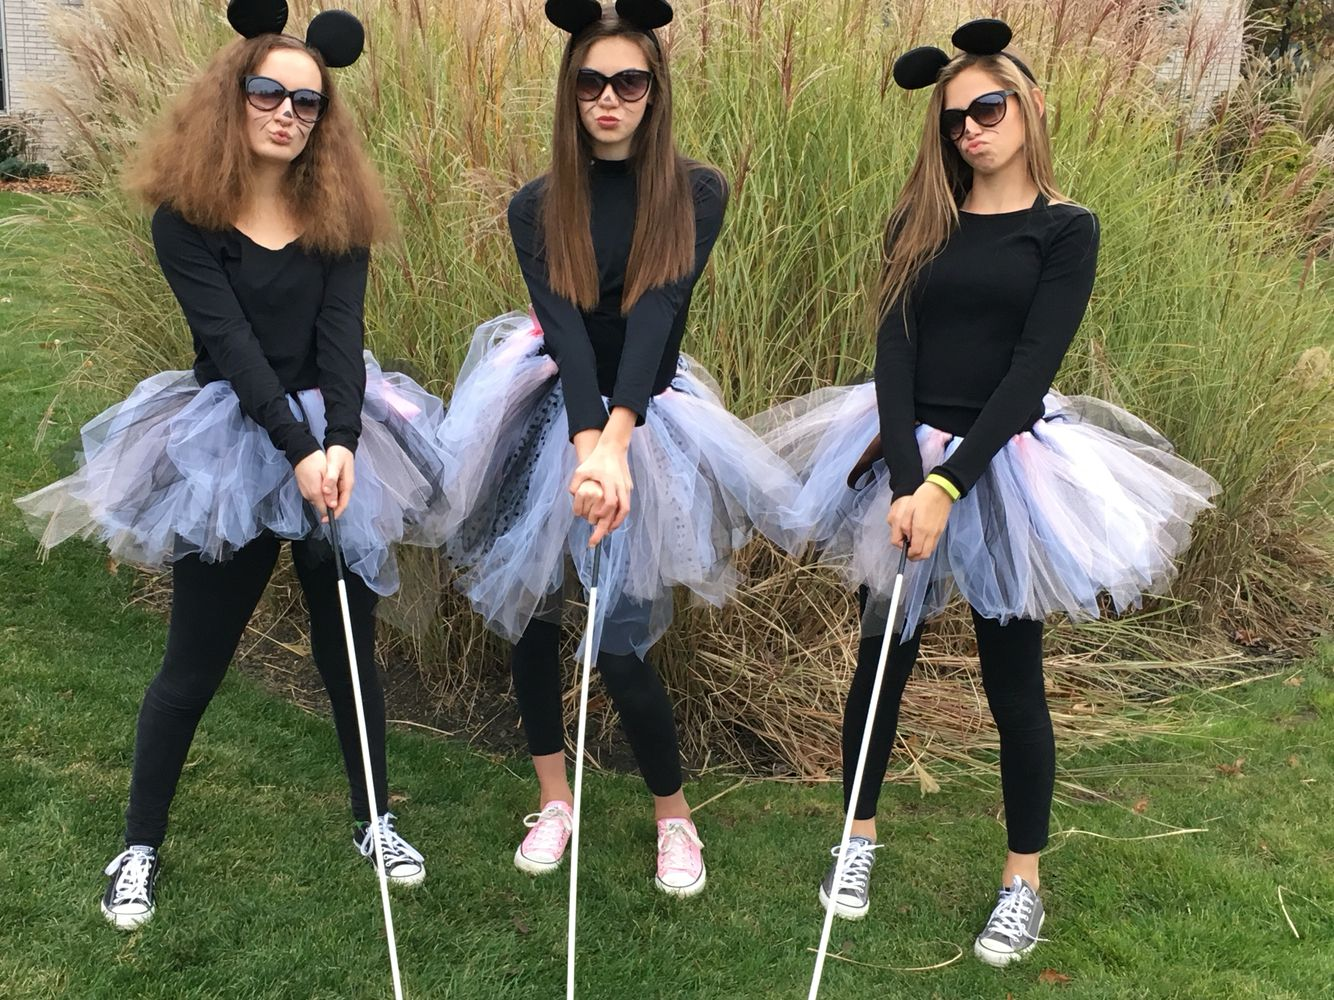 Three Blind Mice Cute Halloween Costumes Trio Halloween Costumes Halloween Costumes For Girls